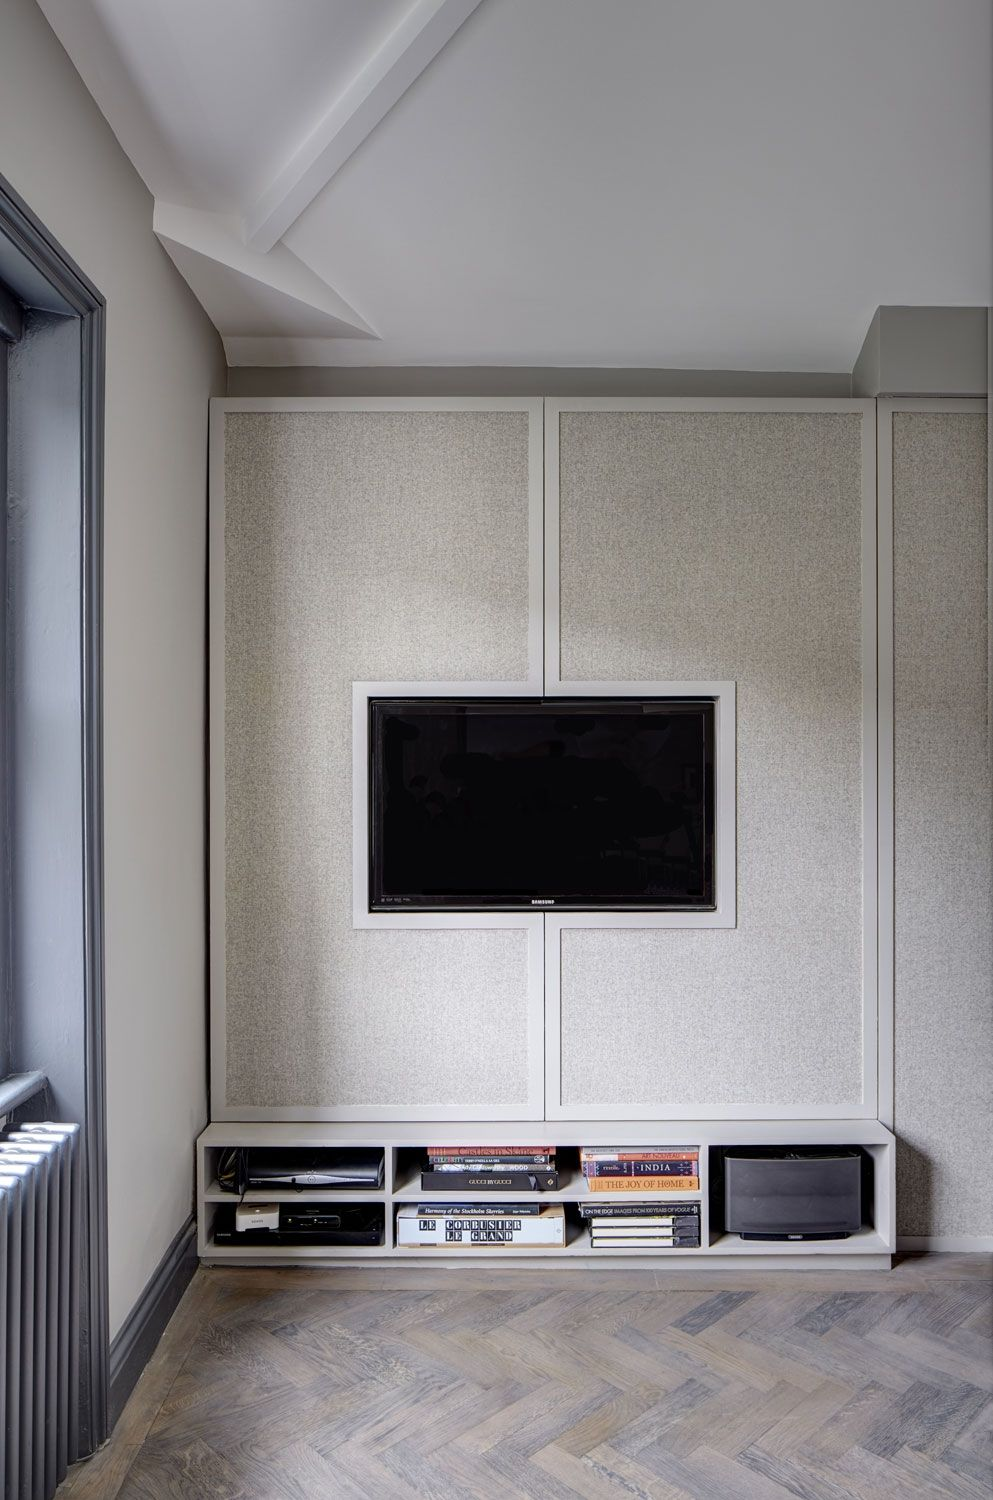 High Style Low Budget In This 750 Square Foot English Flat With